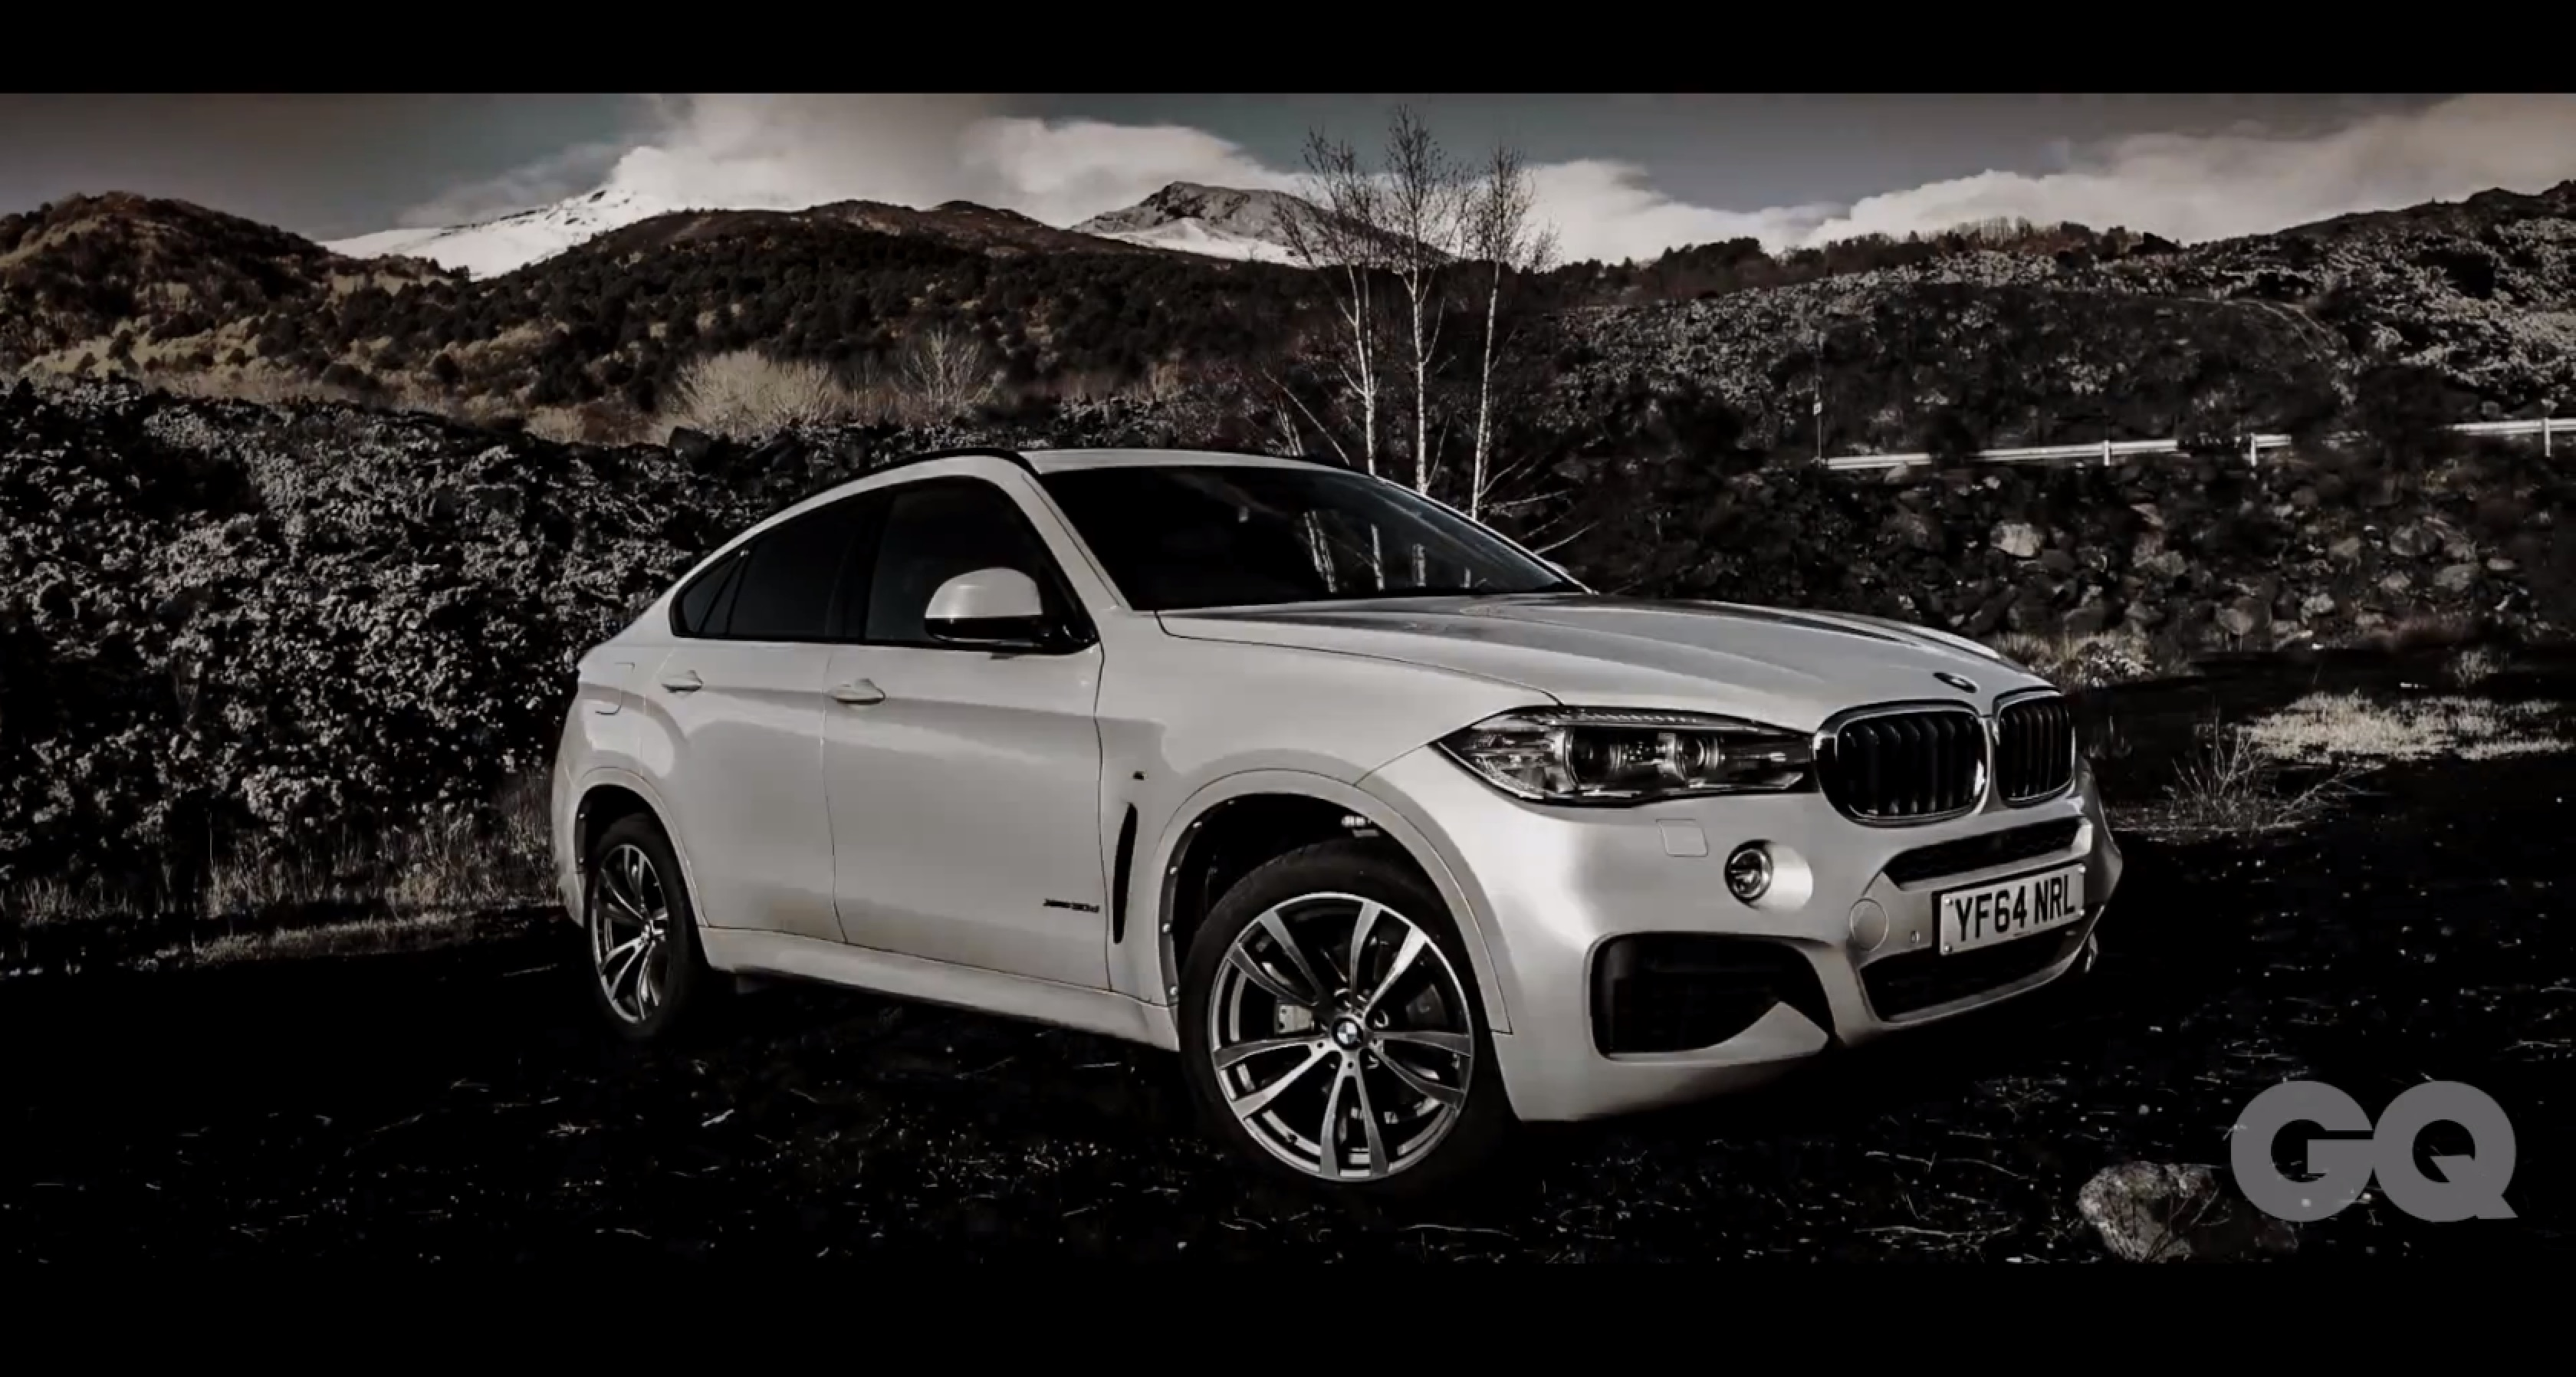 Gq Drives The New Bmw X6 Up Mount Etna